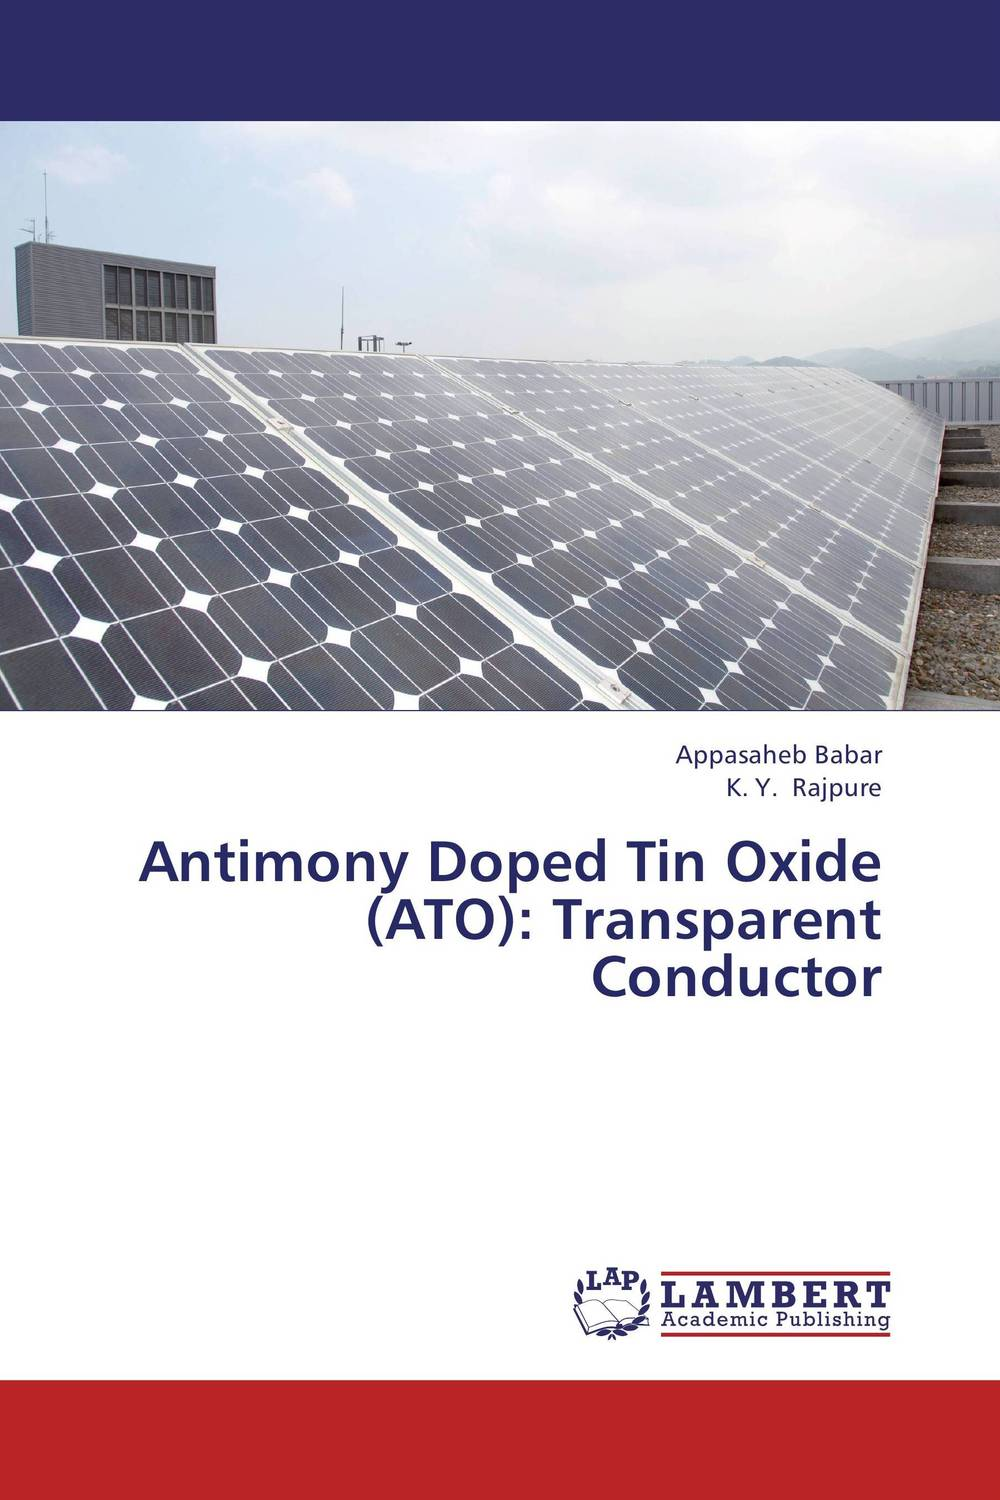 Antimony Doped Tin Oxide (ATO): Transparent Conductor carbohydrate doped mgb2 superconductor for magnet application